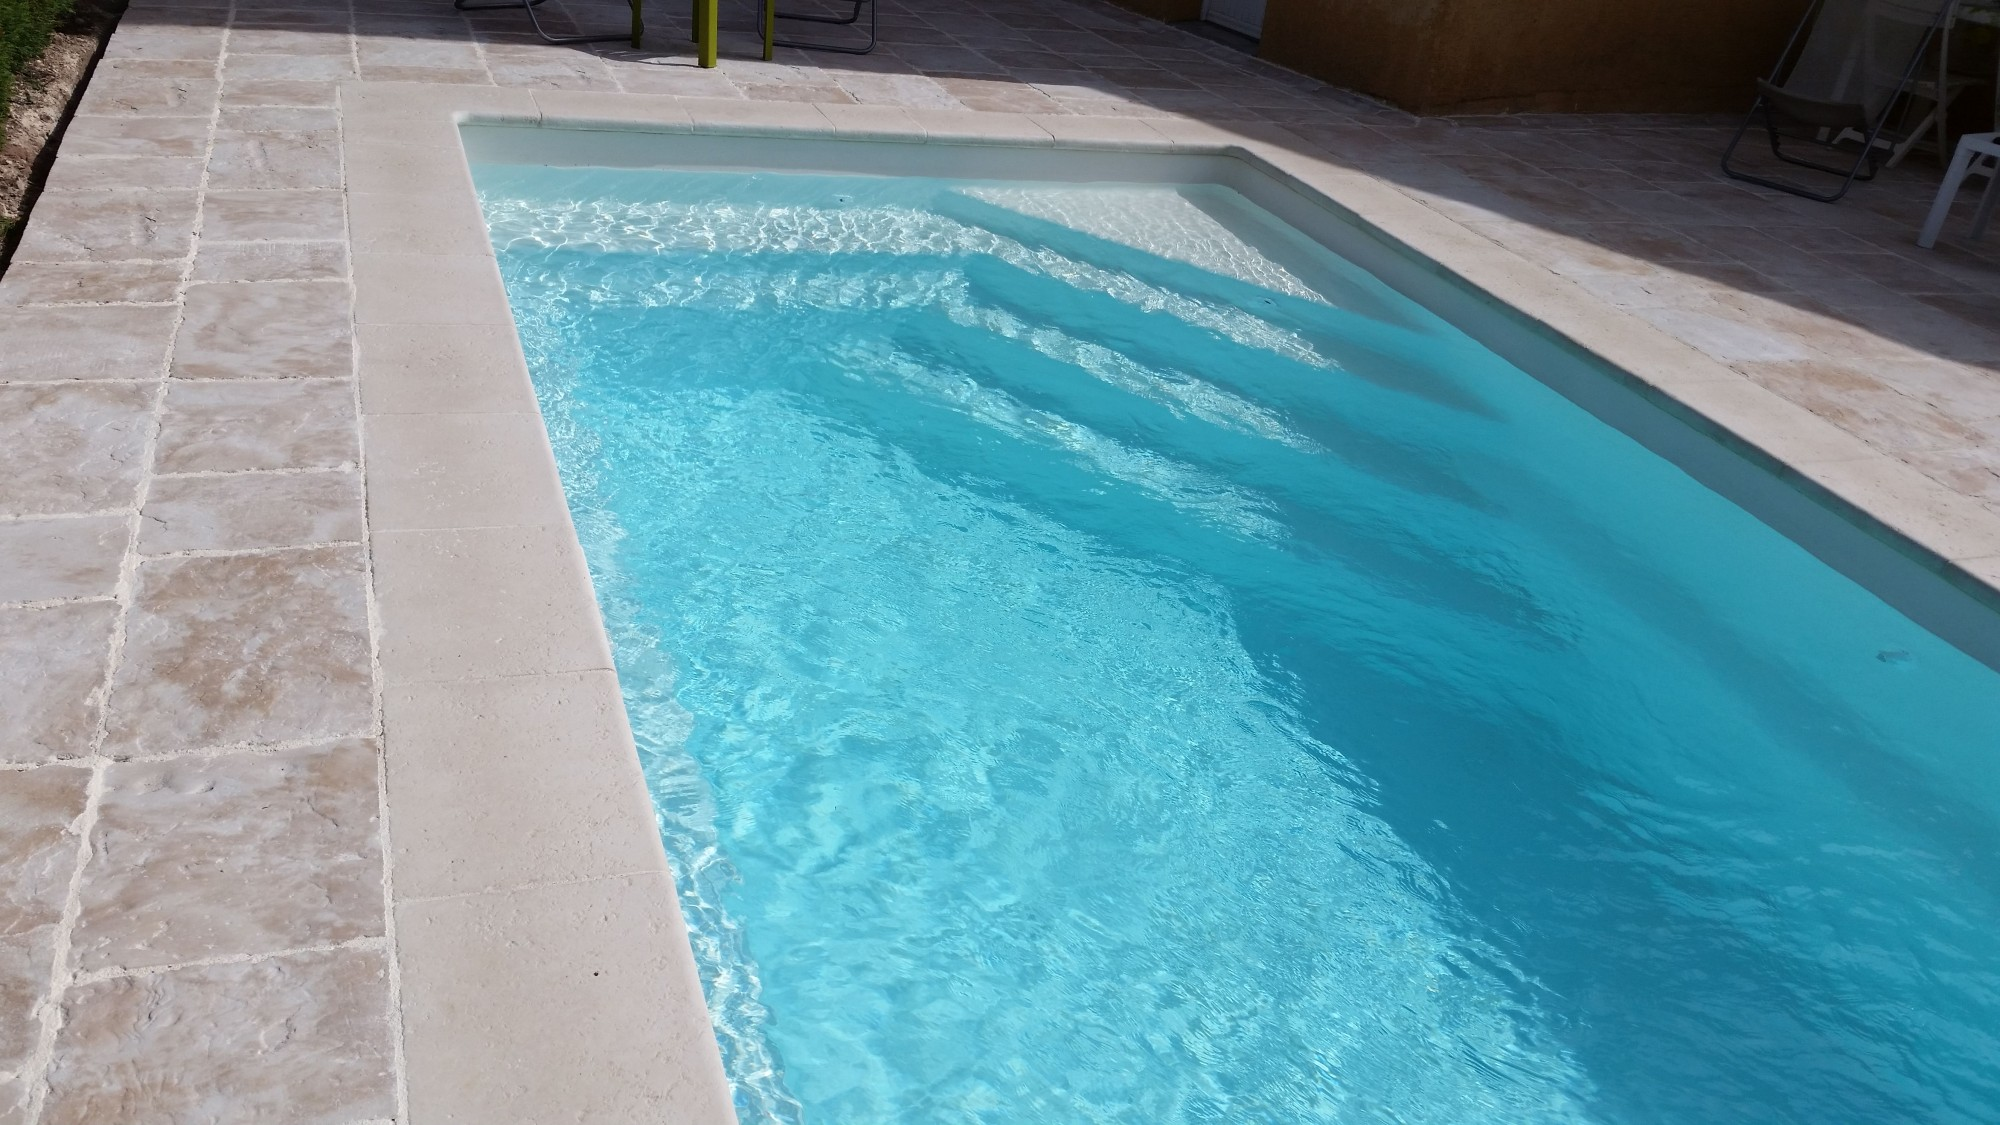 Celestine 7 la garde var r alisation alliance piscines for Piscine celestine 7